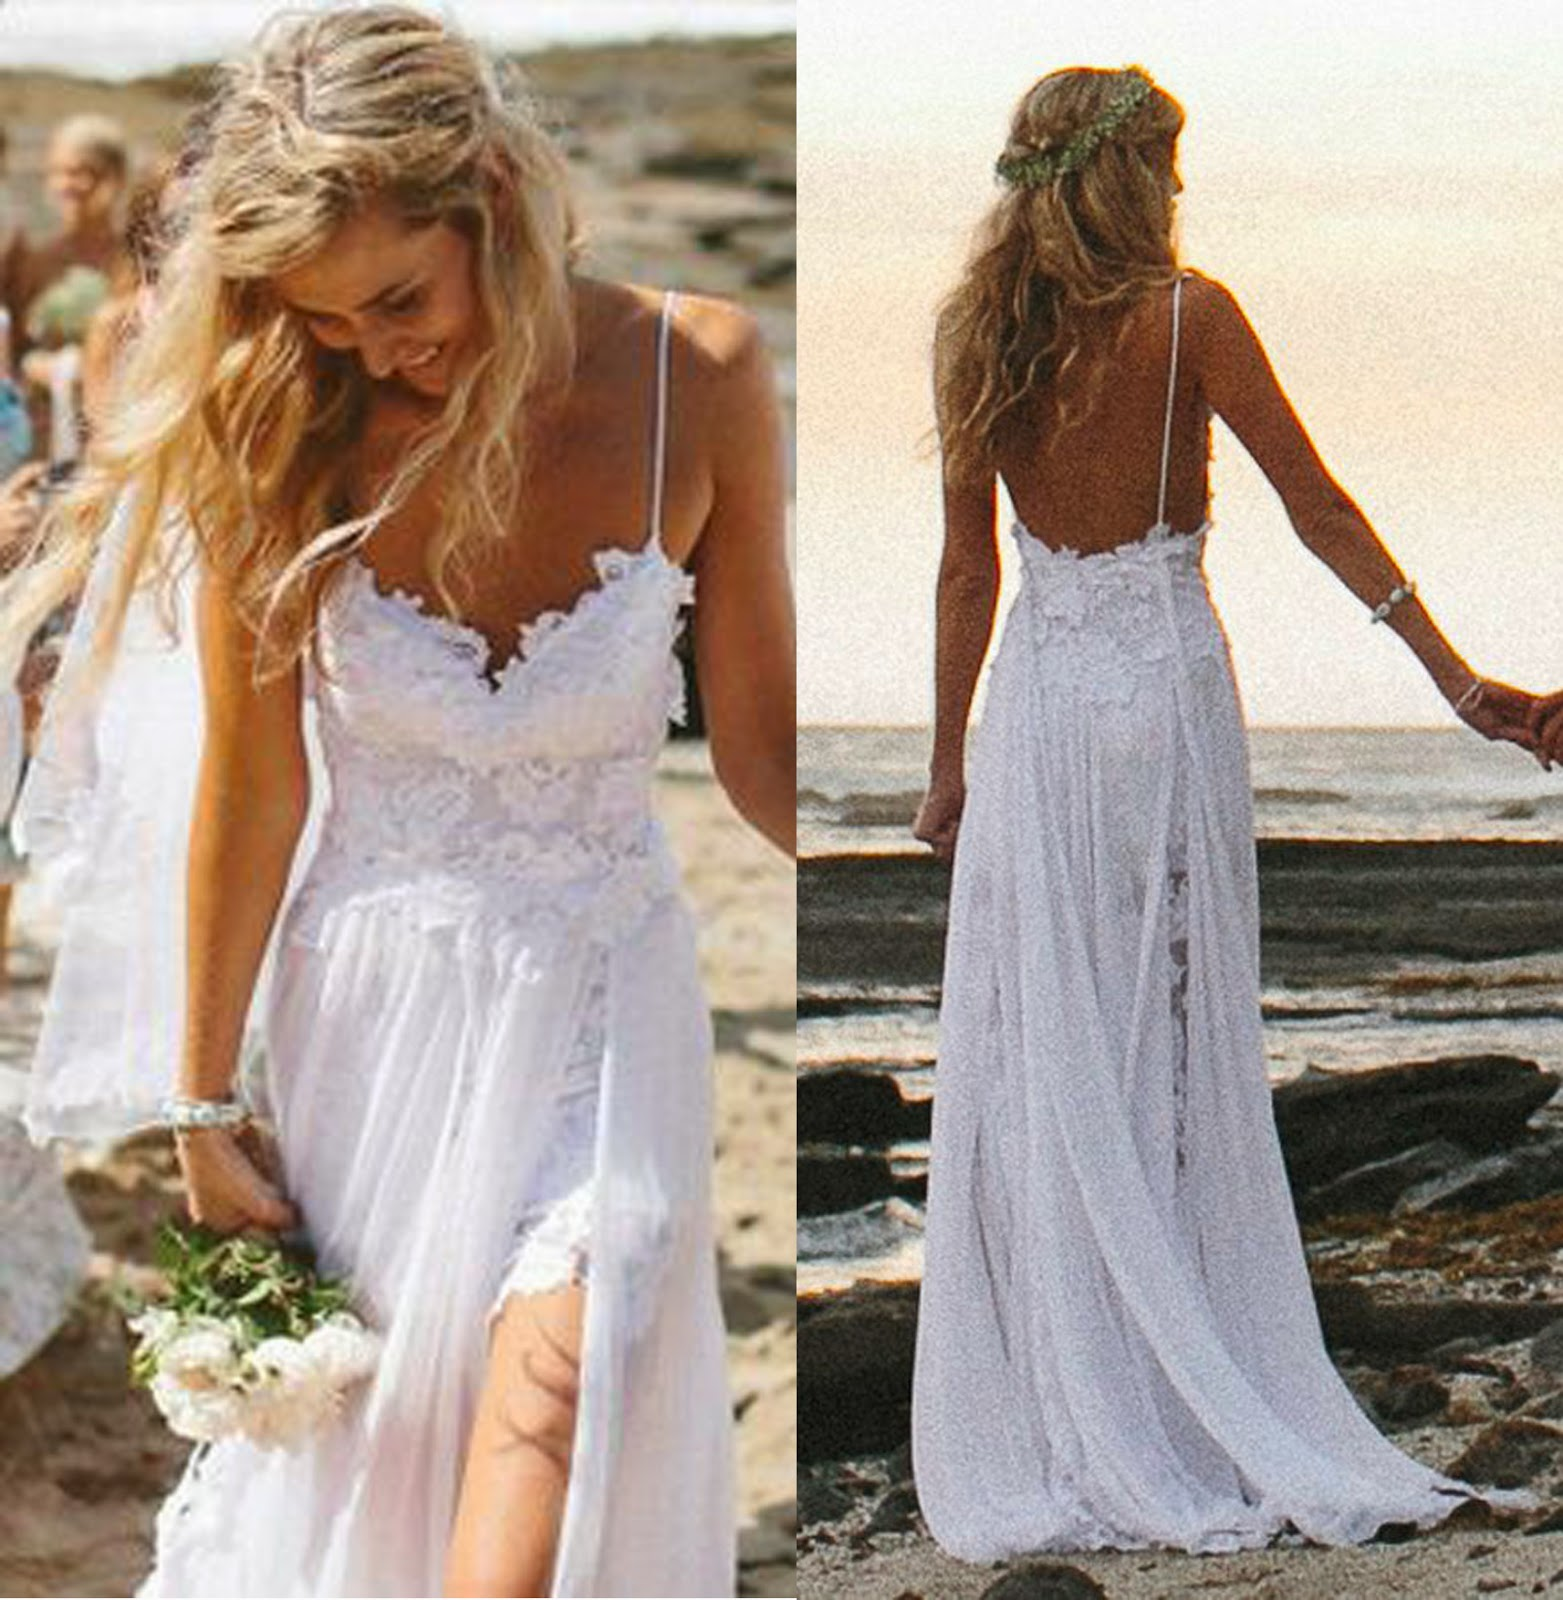 Beach Wedding Gown: Natasha Wedding Essentials: Summer Beach Wedding Ideas